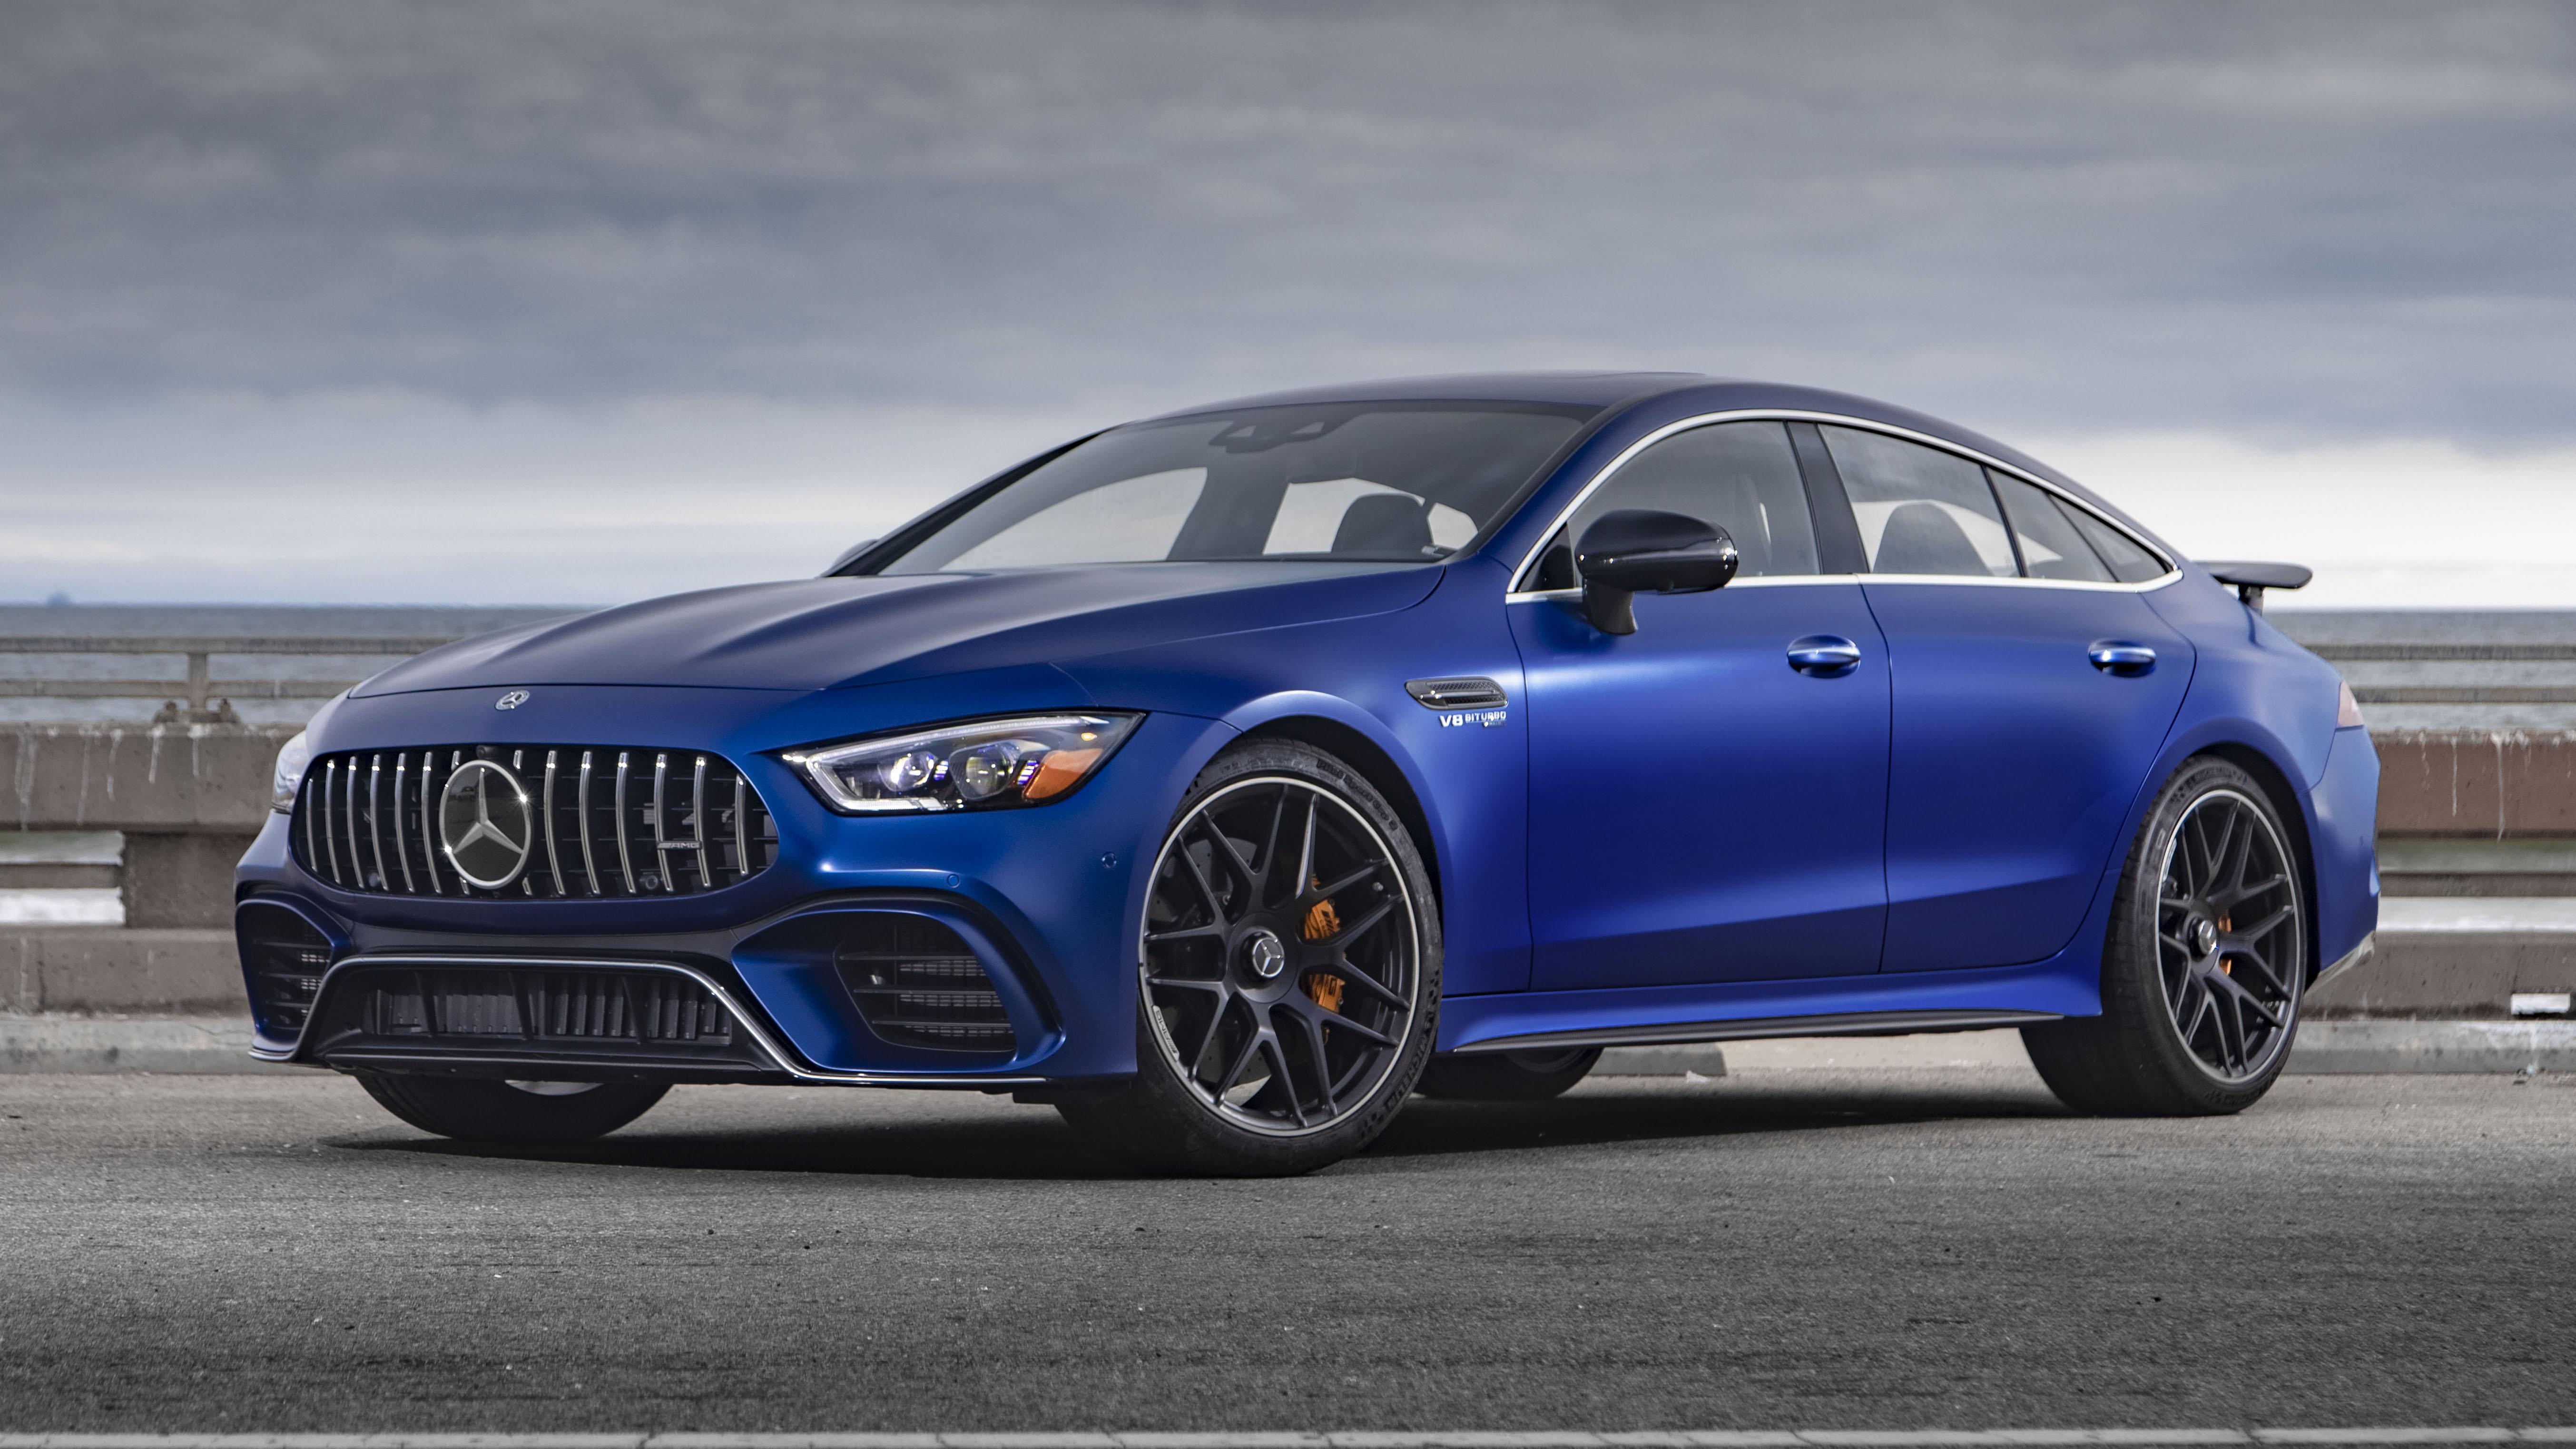 Certified Pre Owned Mercedes >> 2019 Mercedes-AMG GT 63 S 4-Door Review   Performance, handling and interior   Autoblog